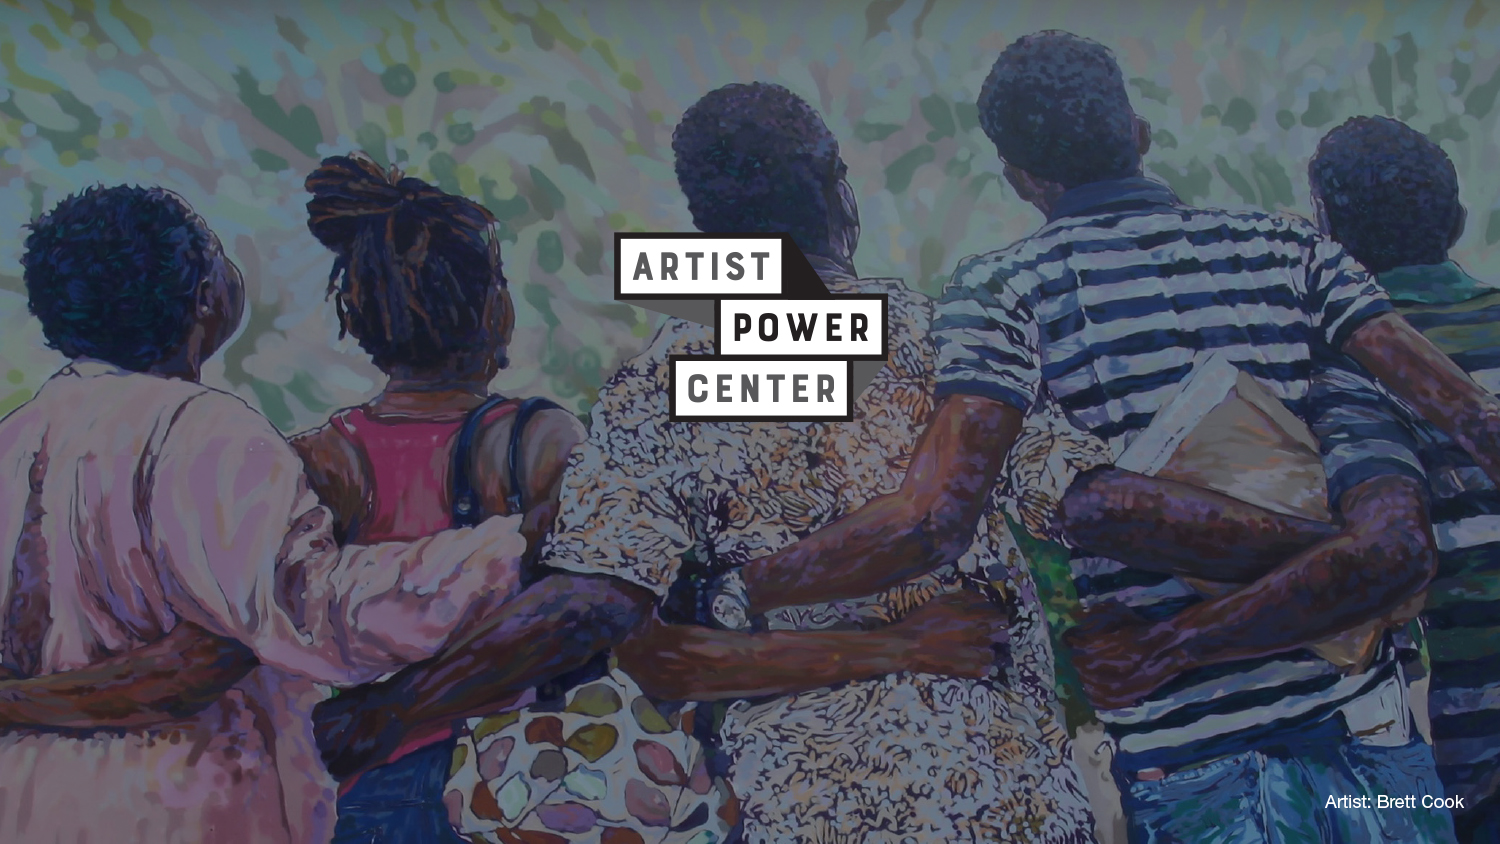 Yerba Buena Center for the Arts' Artist Power Center, a web and hotline resource, received additional funding from the SFAC to expand its reach in 2021.